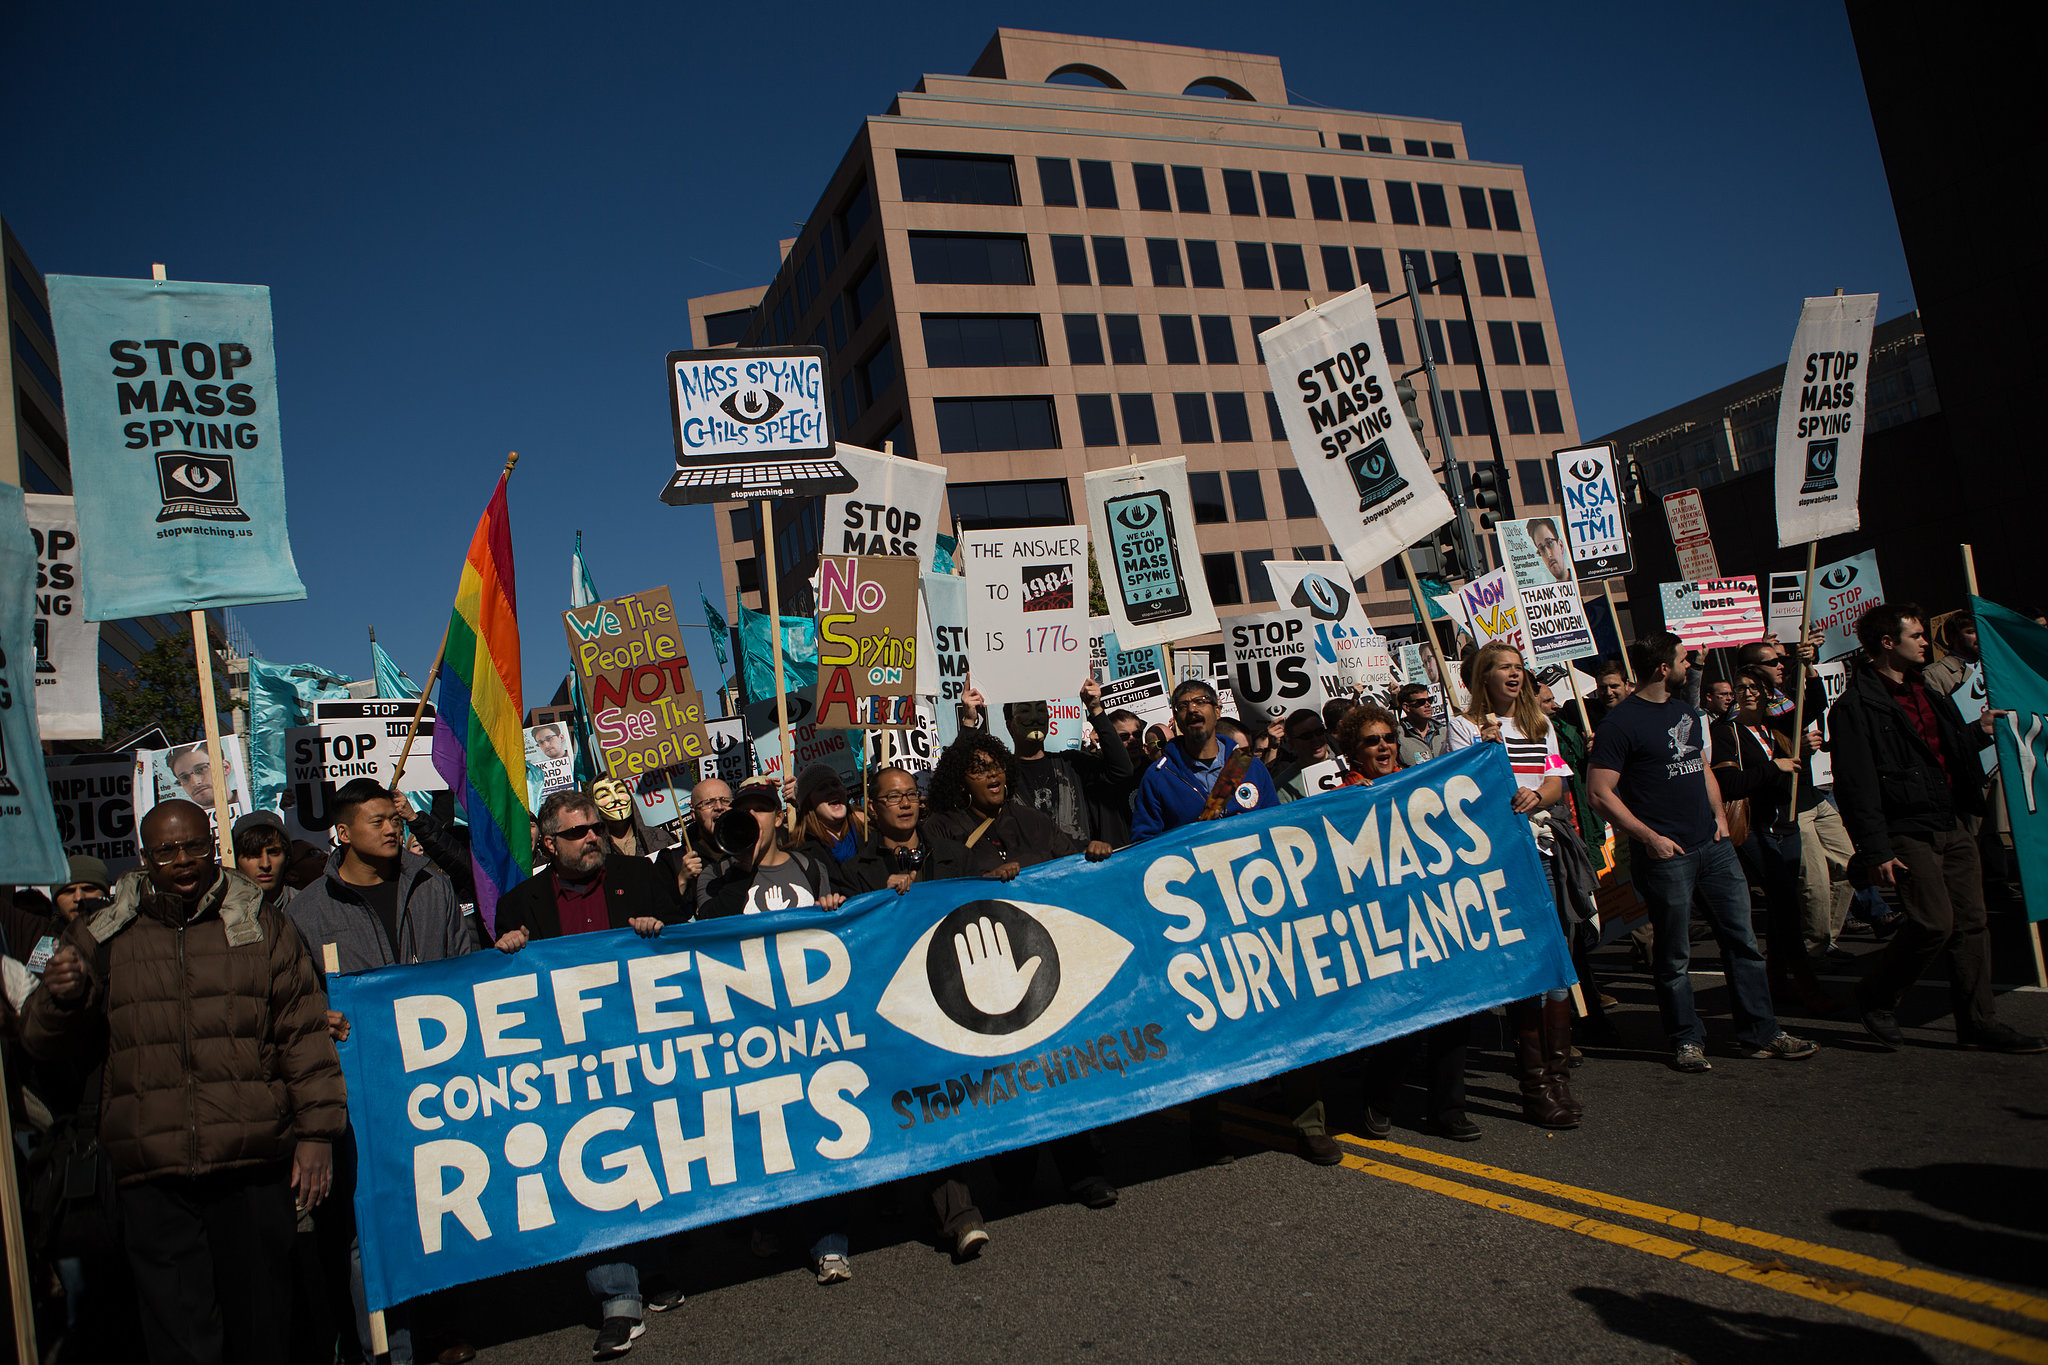 Pro-privacy demonstrators march in front of the US Capitol building on Oct. 26, 2013.